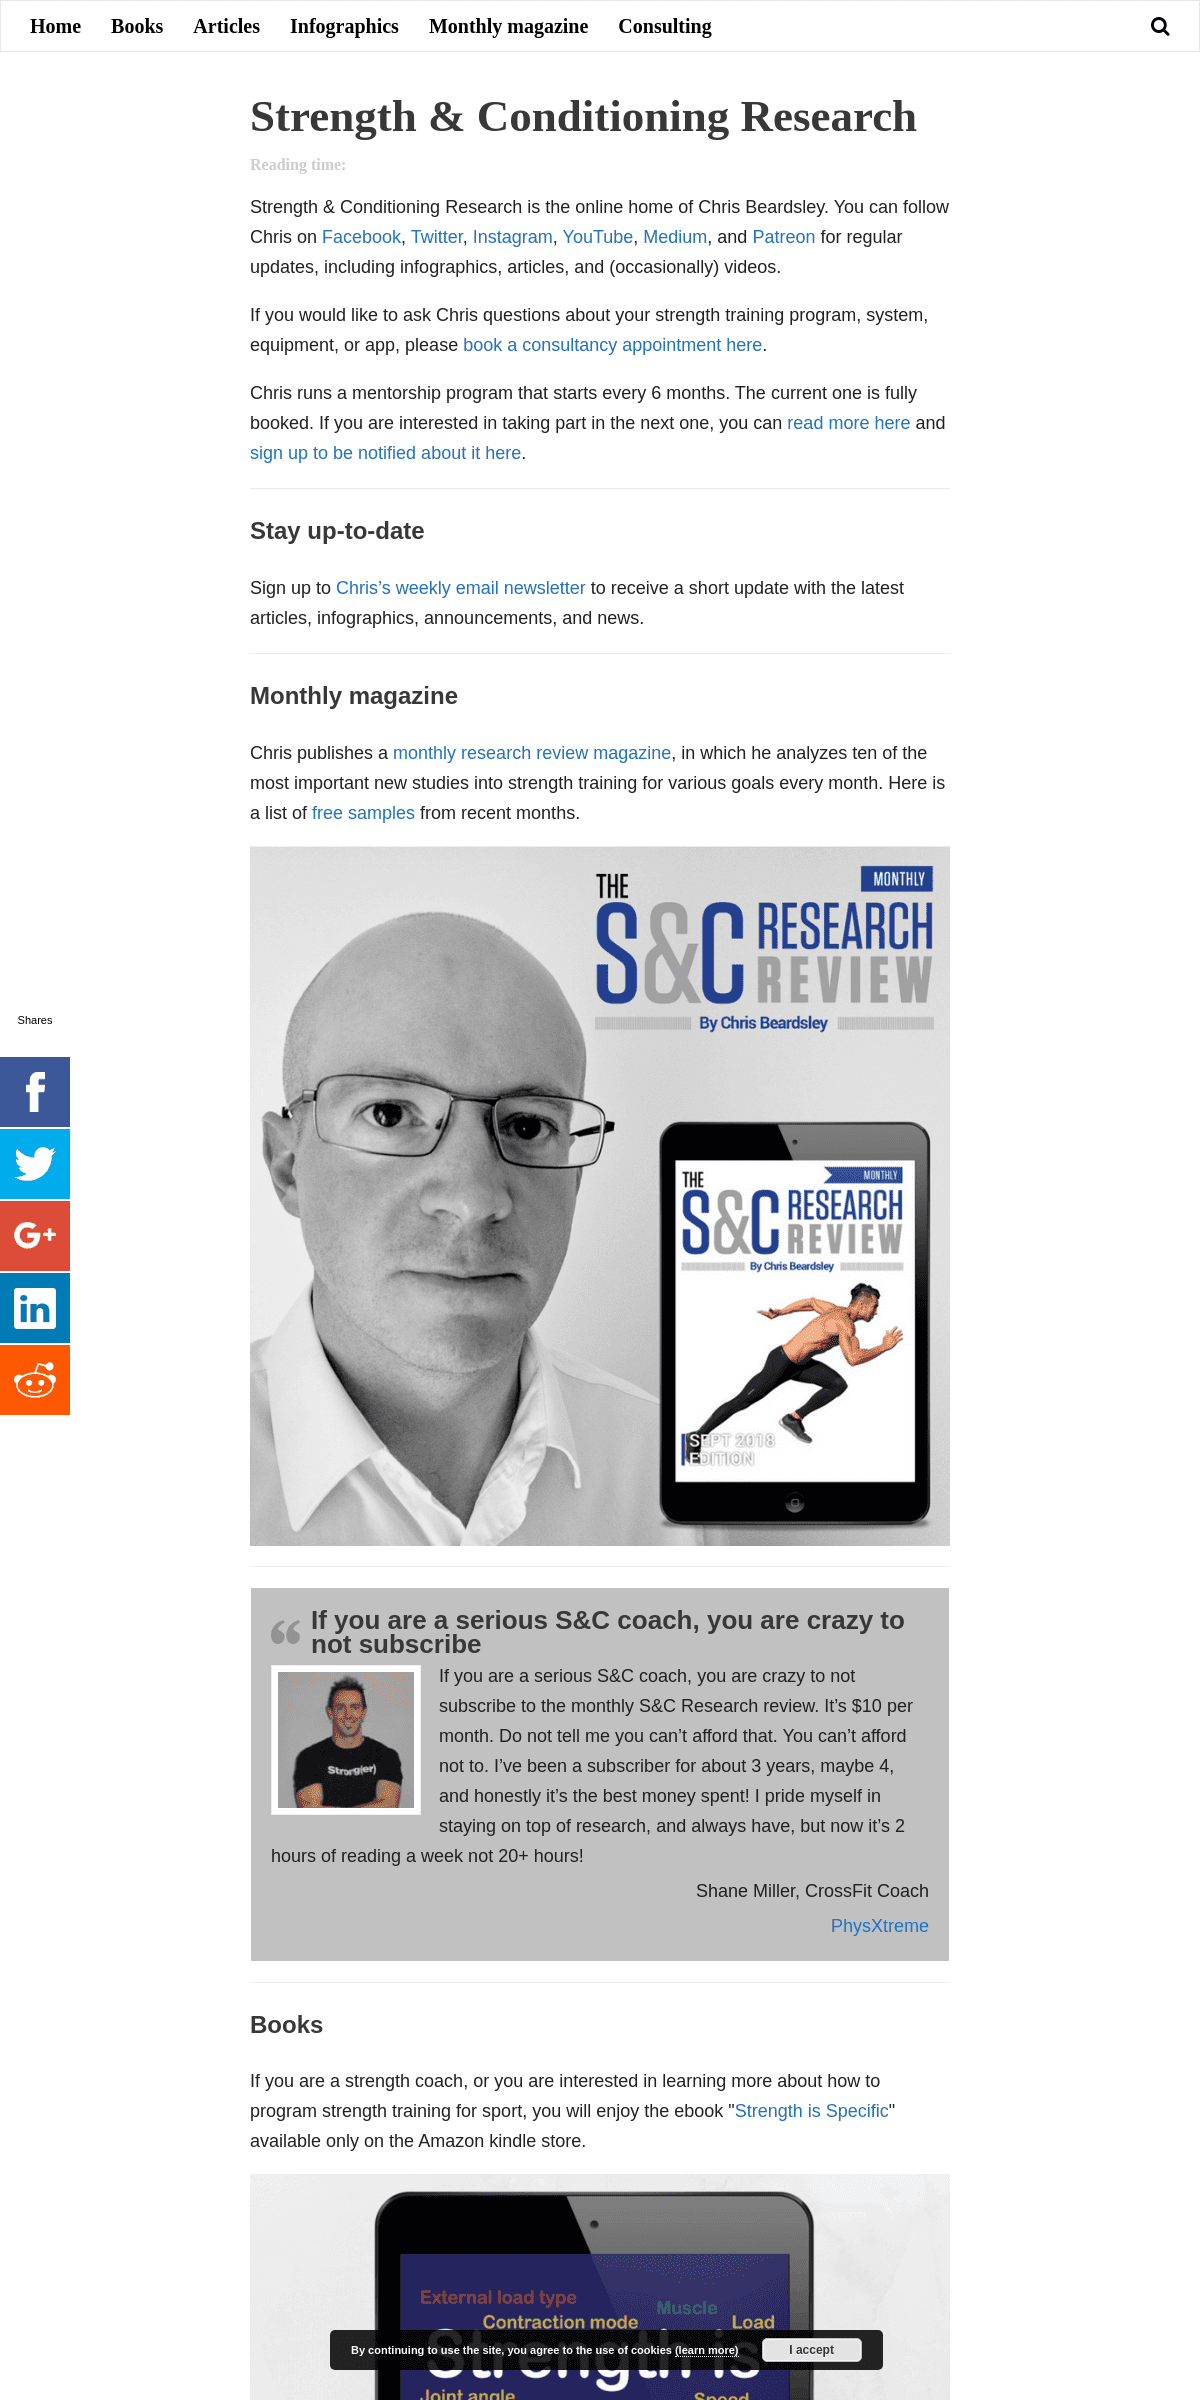 Strength & Conditioning Research - Encyclopedia of training for sports